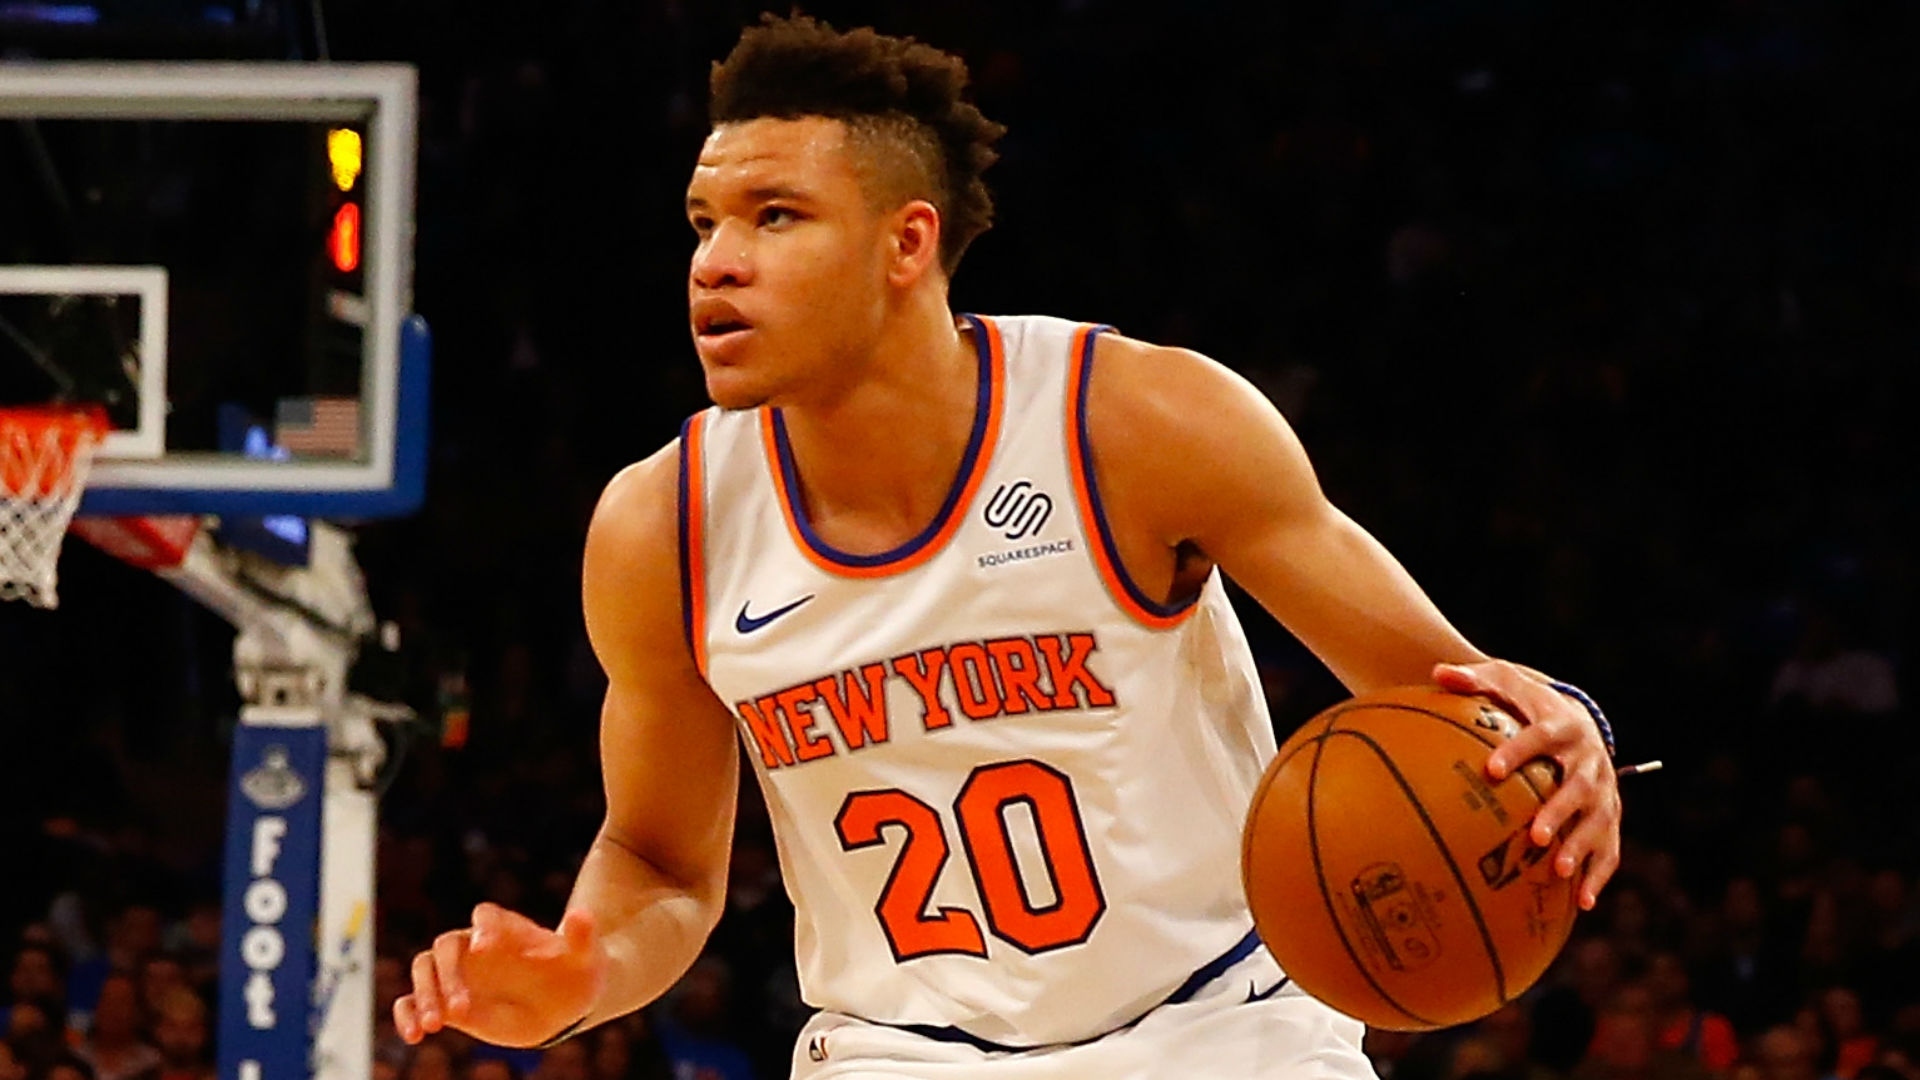 Knicks F Kevin Knox on fans rooting for tanking: 'They're not really true New Yorkers'